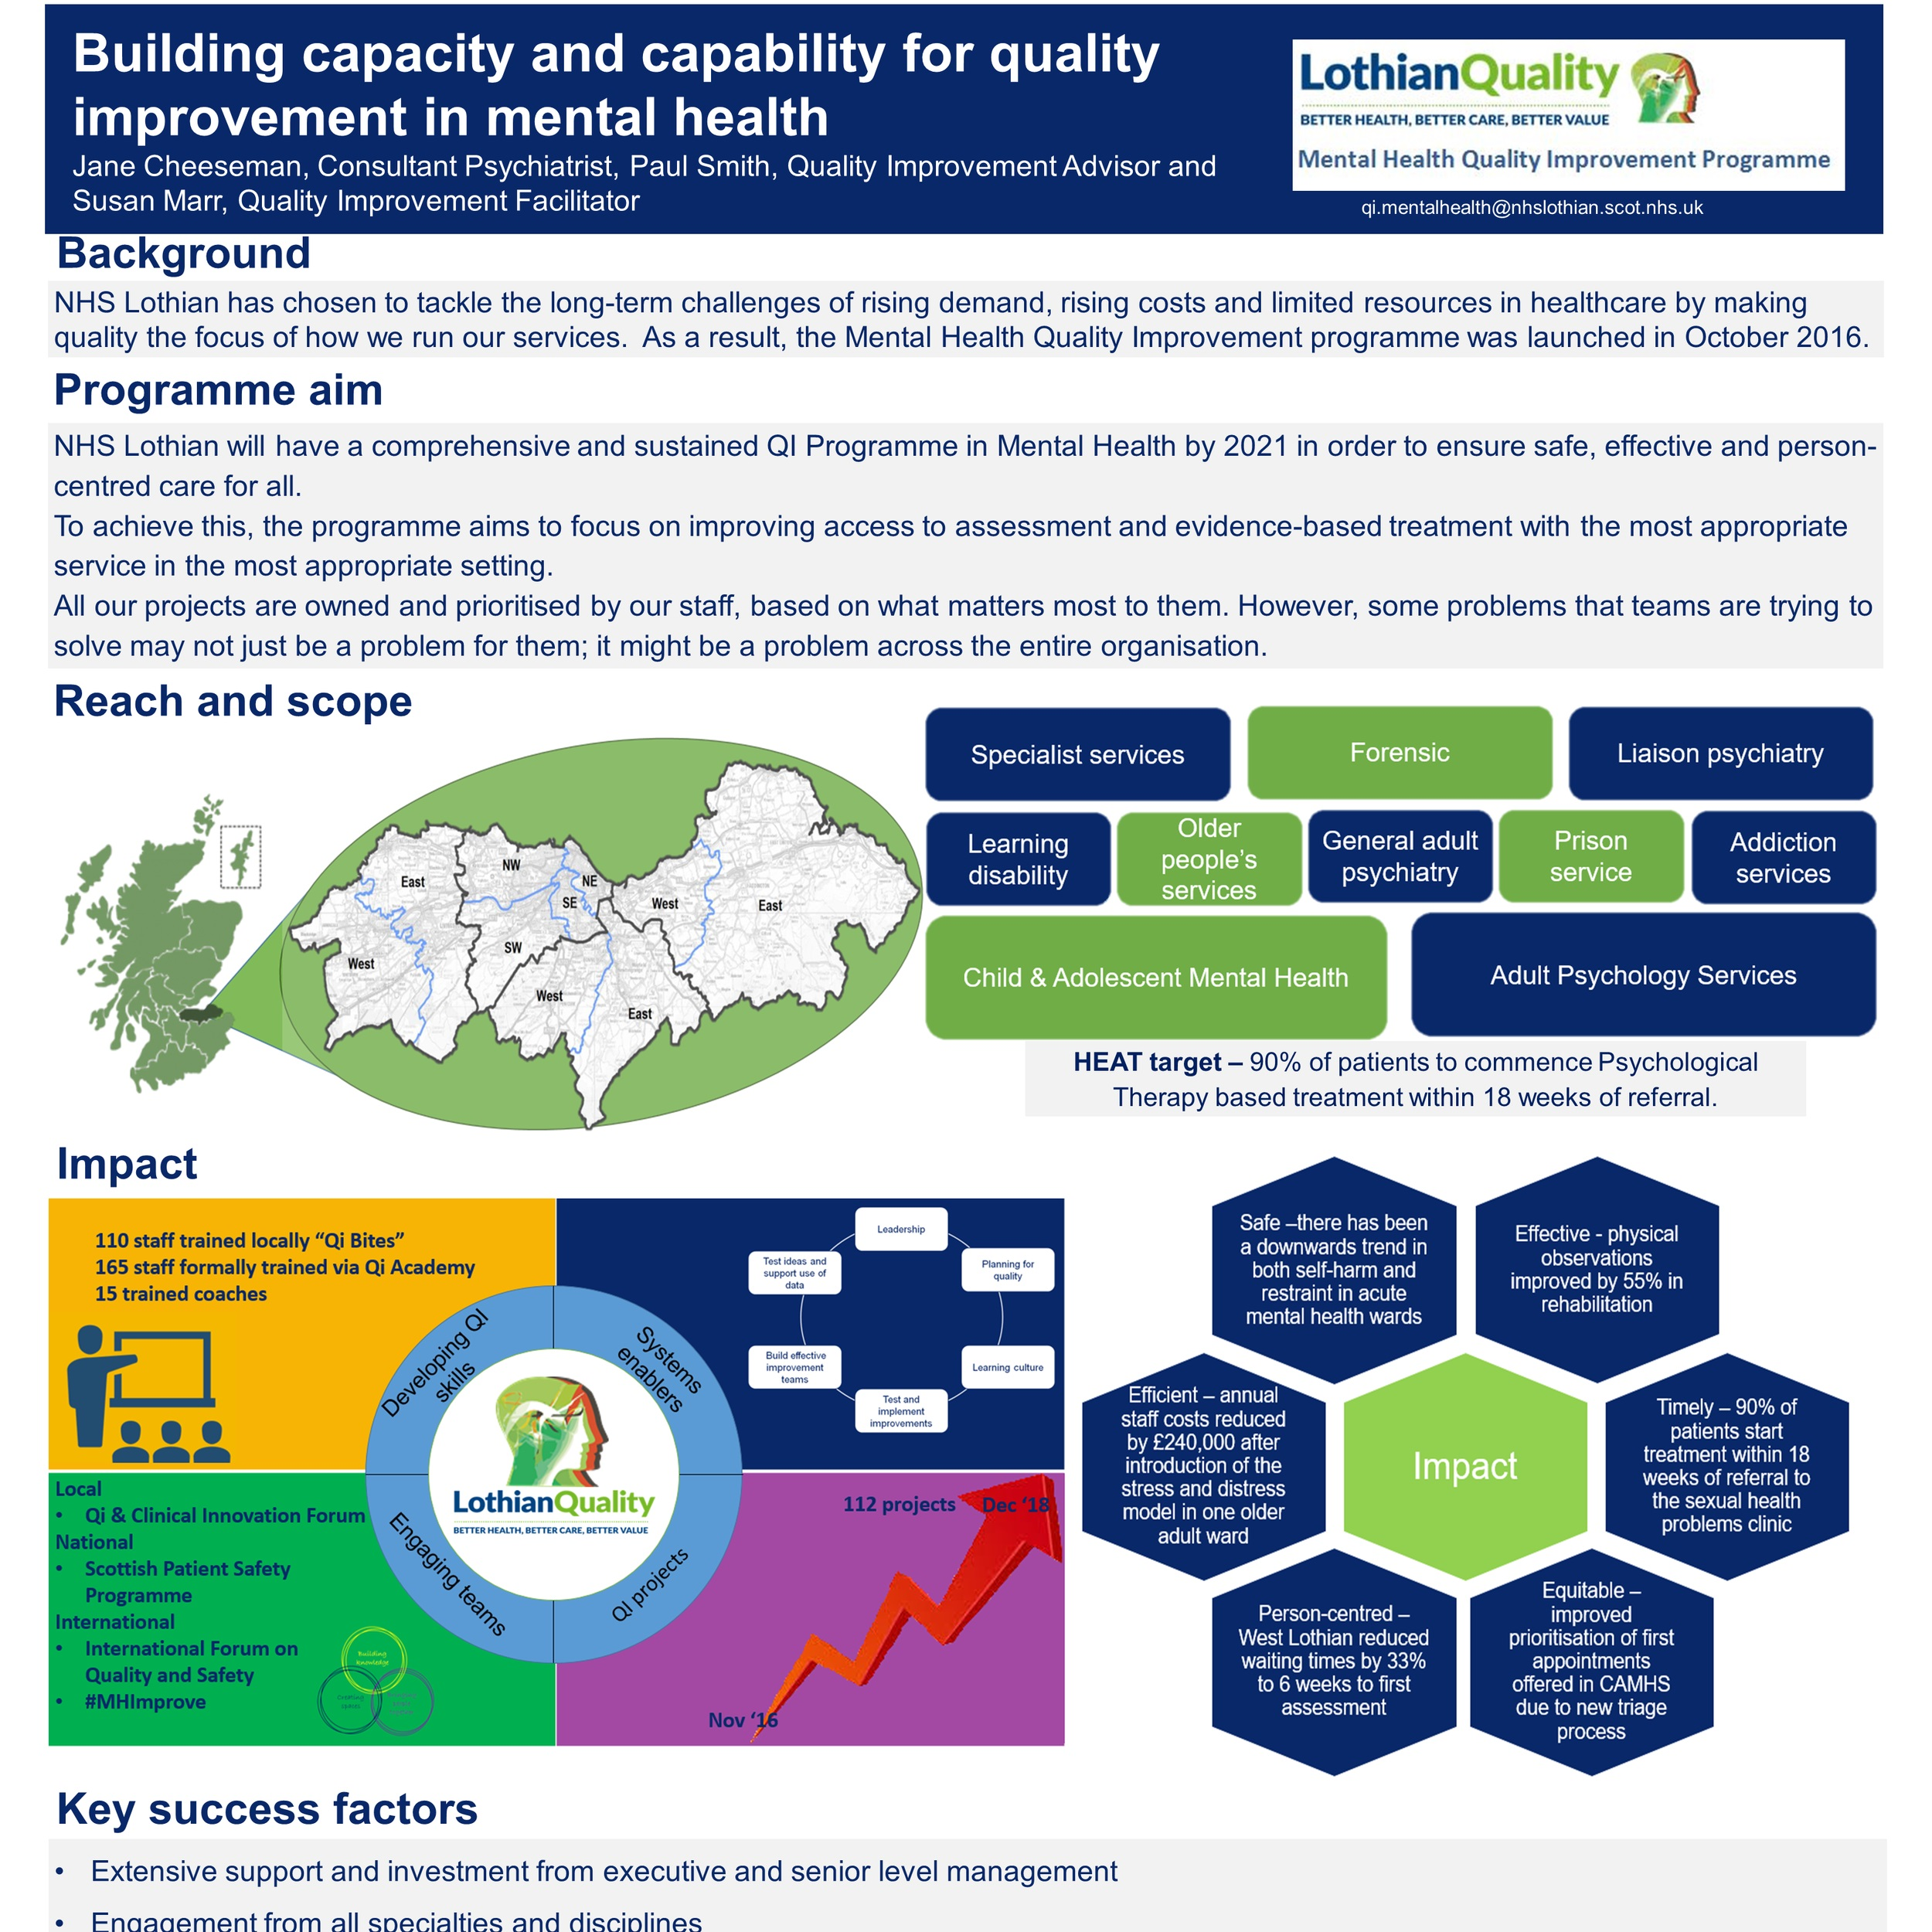 Building capacity and capability for quality Improvement in mental health